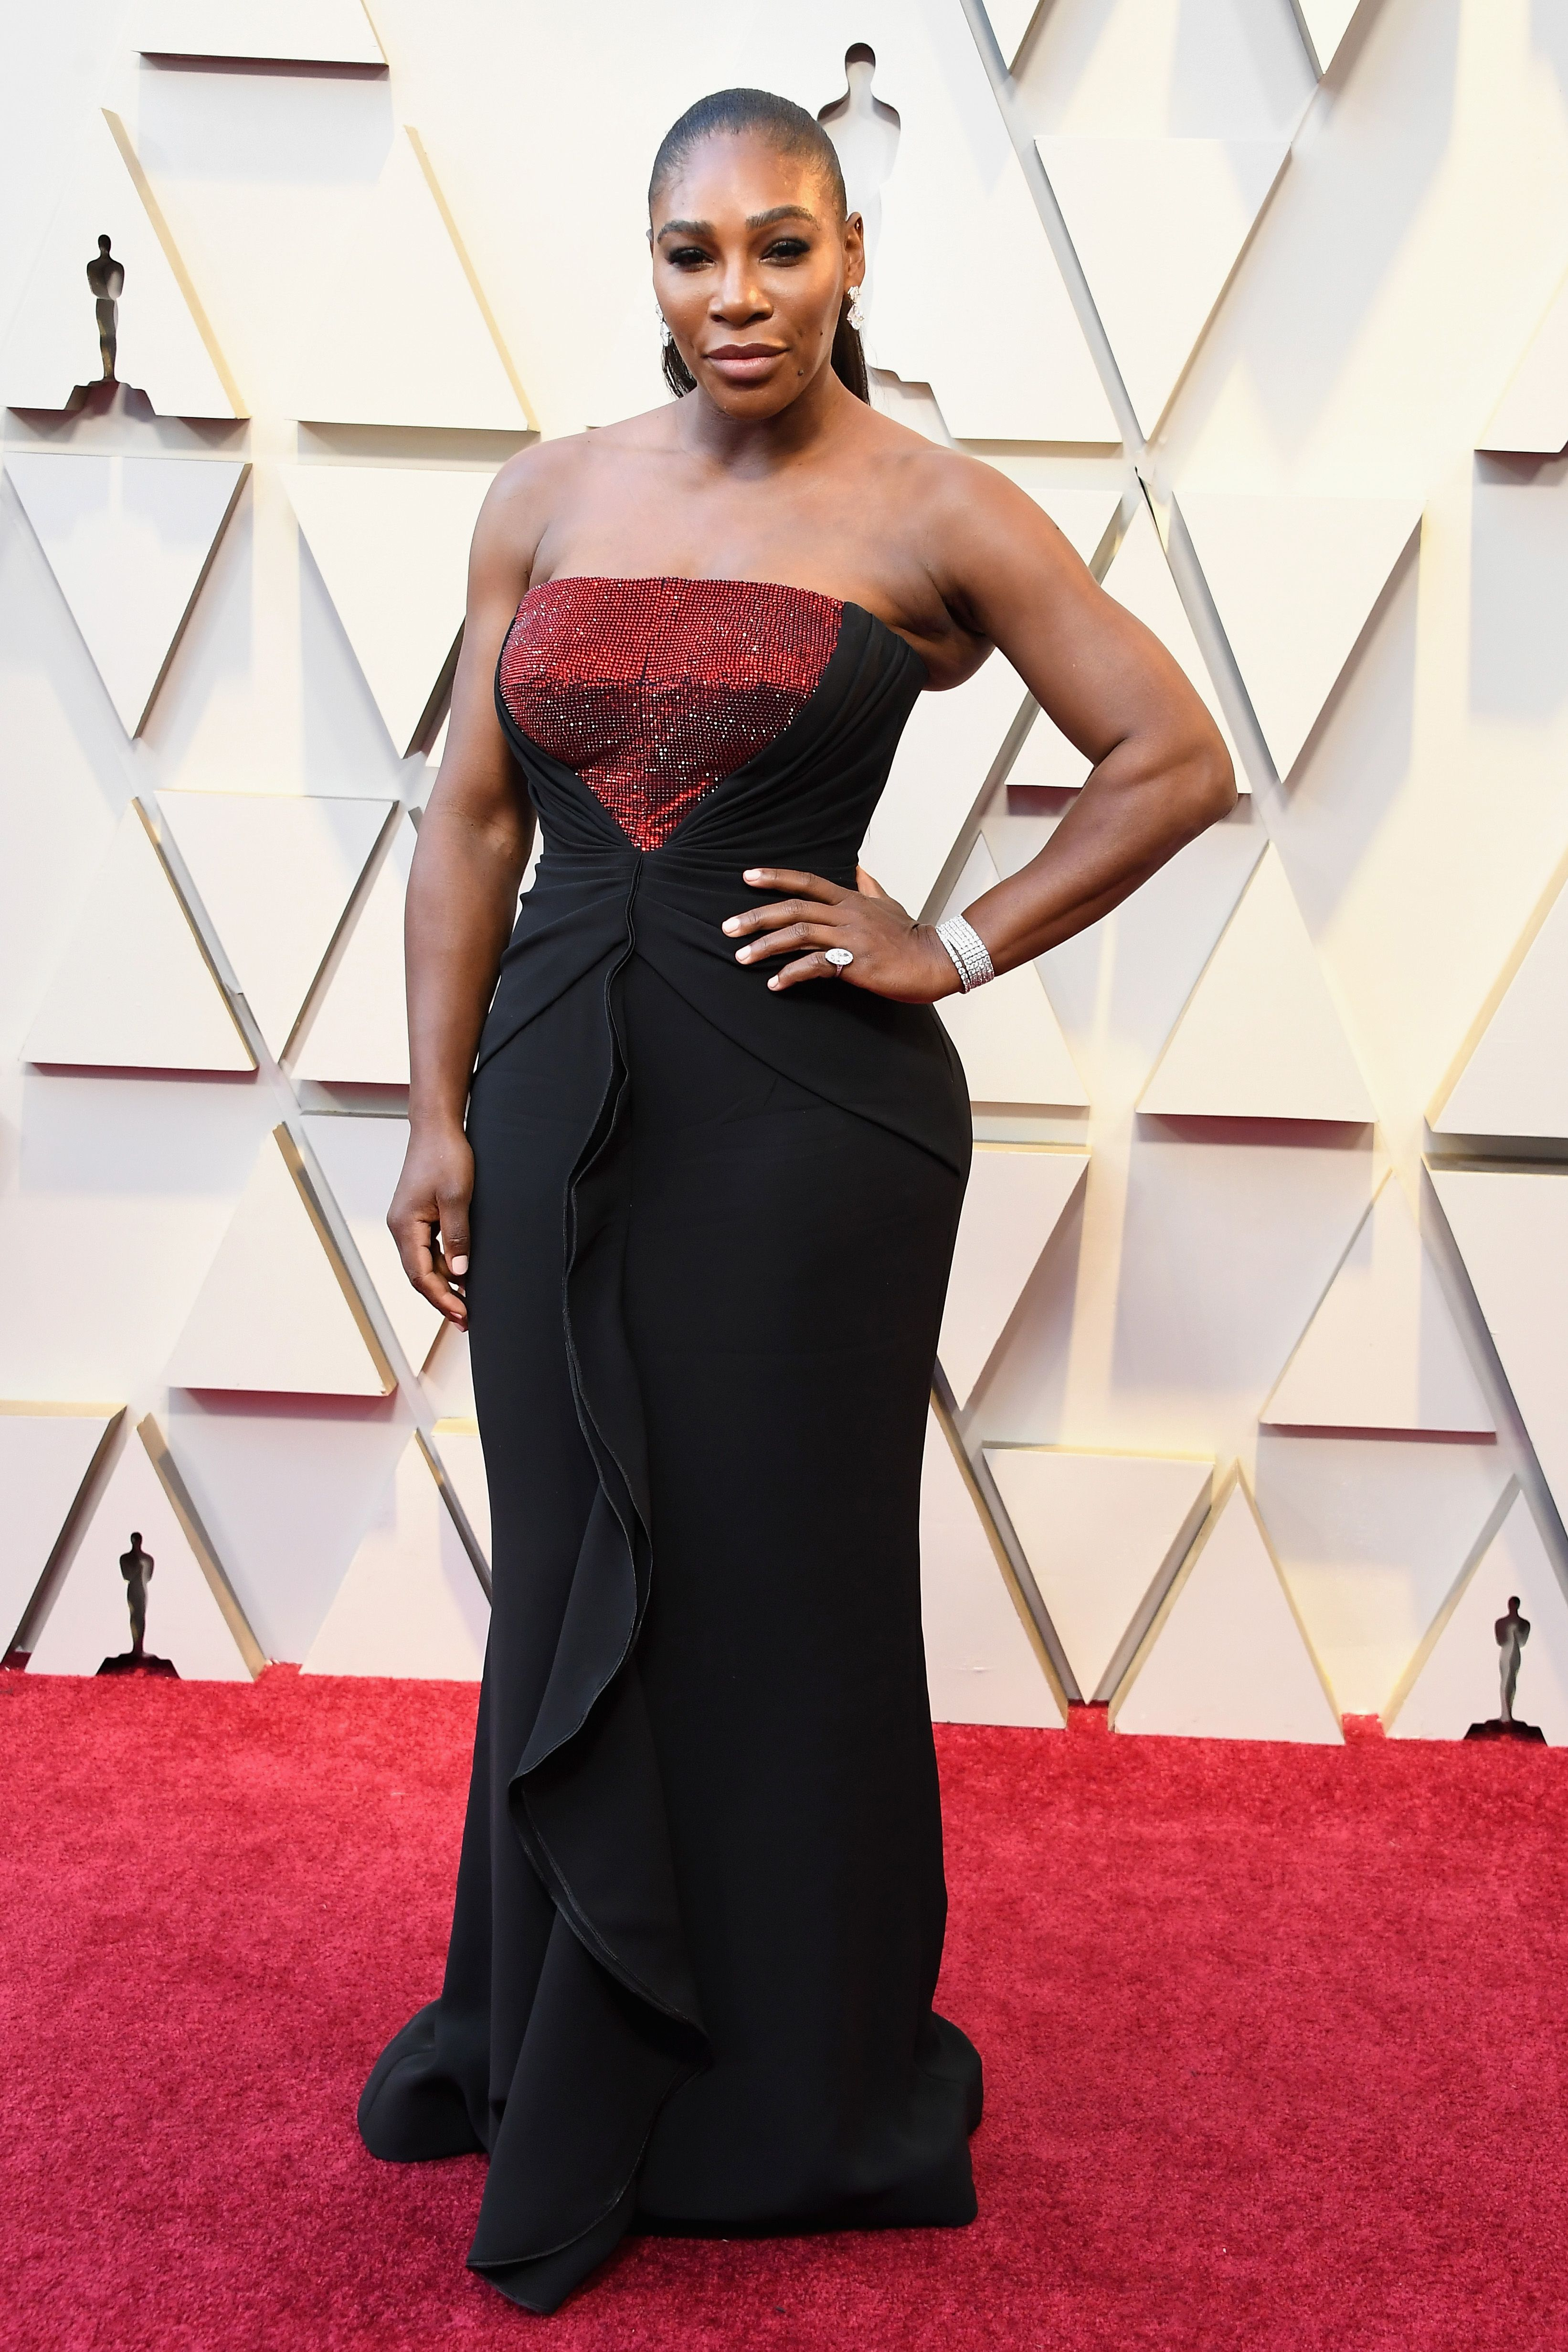 Serena Williams at the Oscars 2019